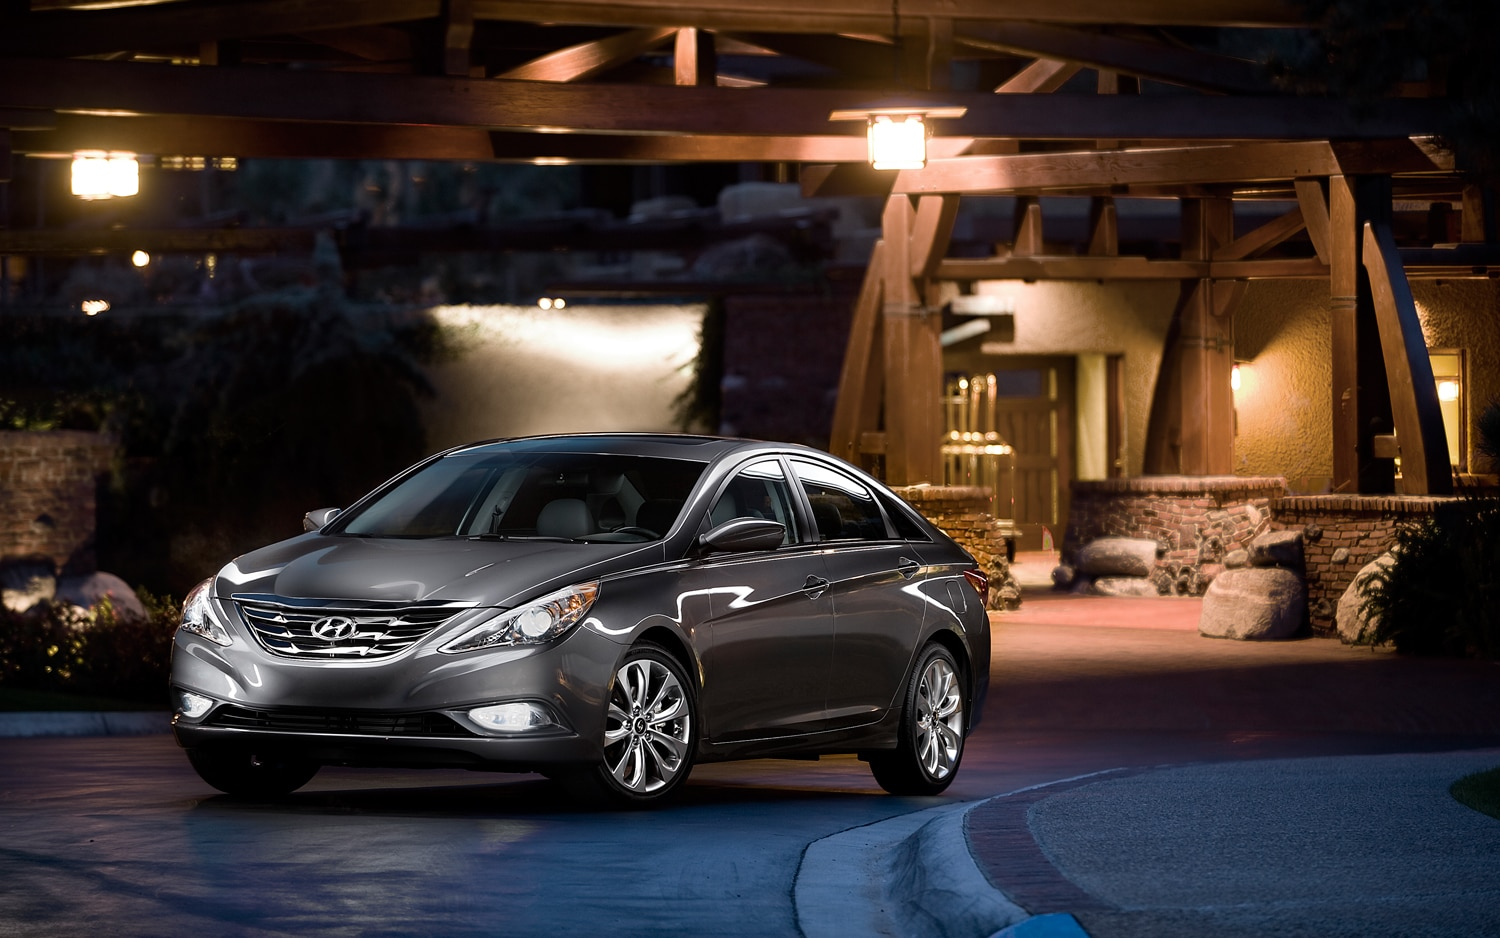 2013 Hyundai Sonata Front Three Quarter1